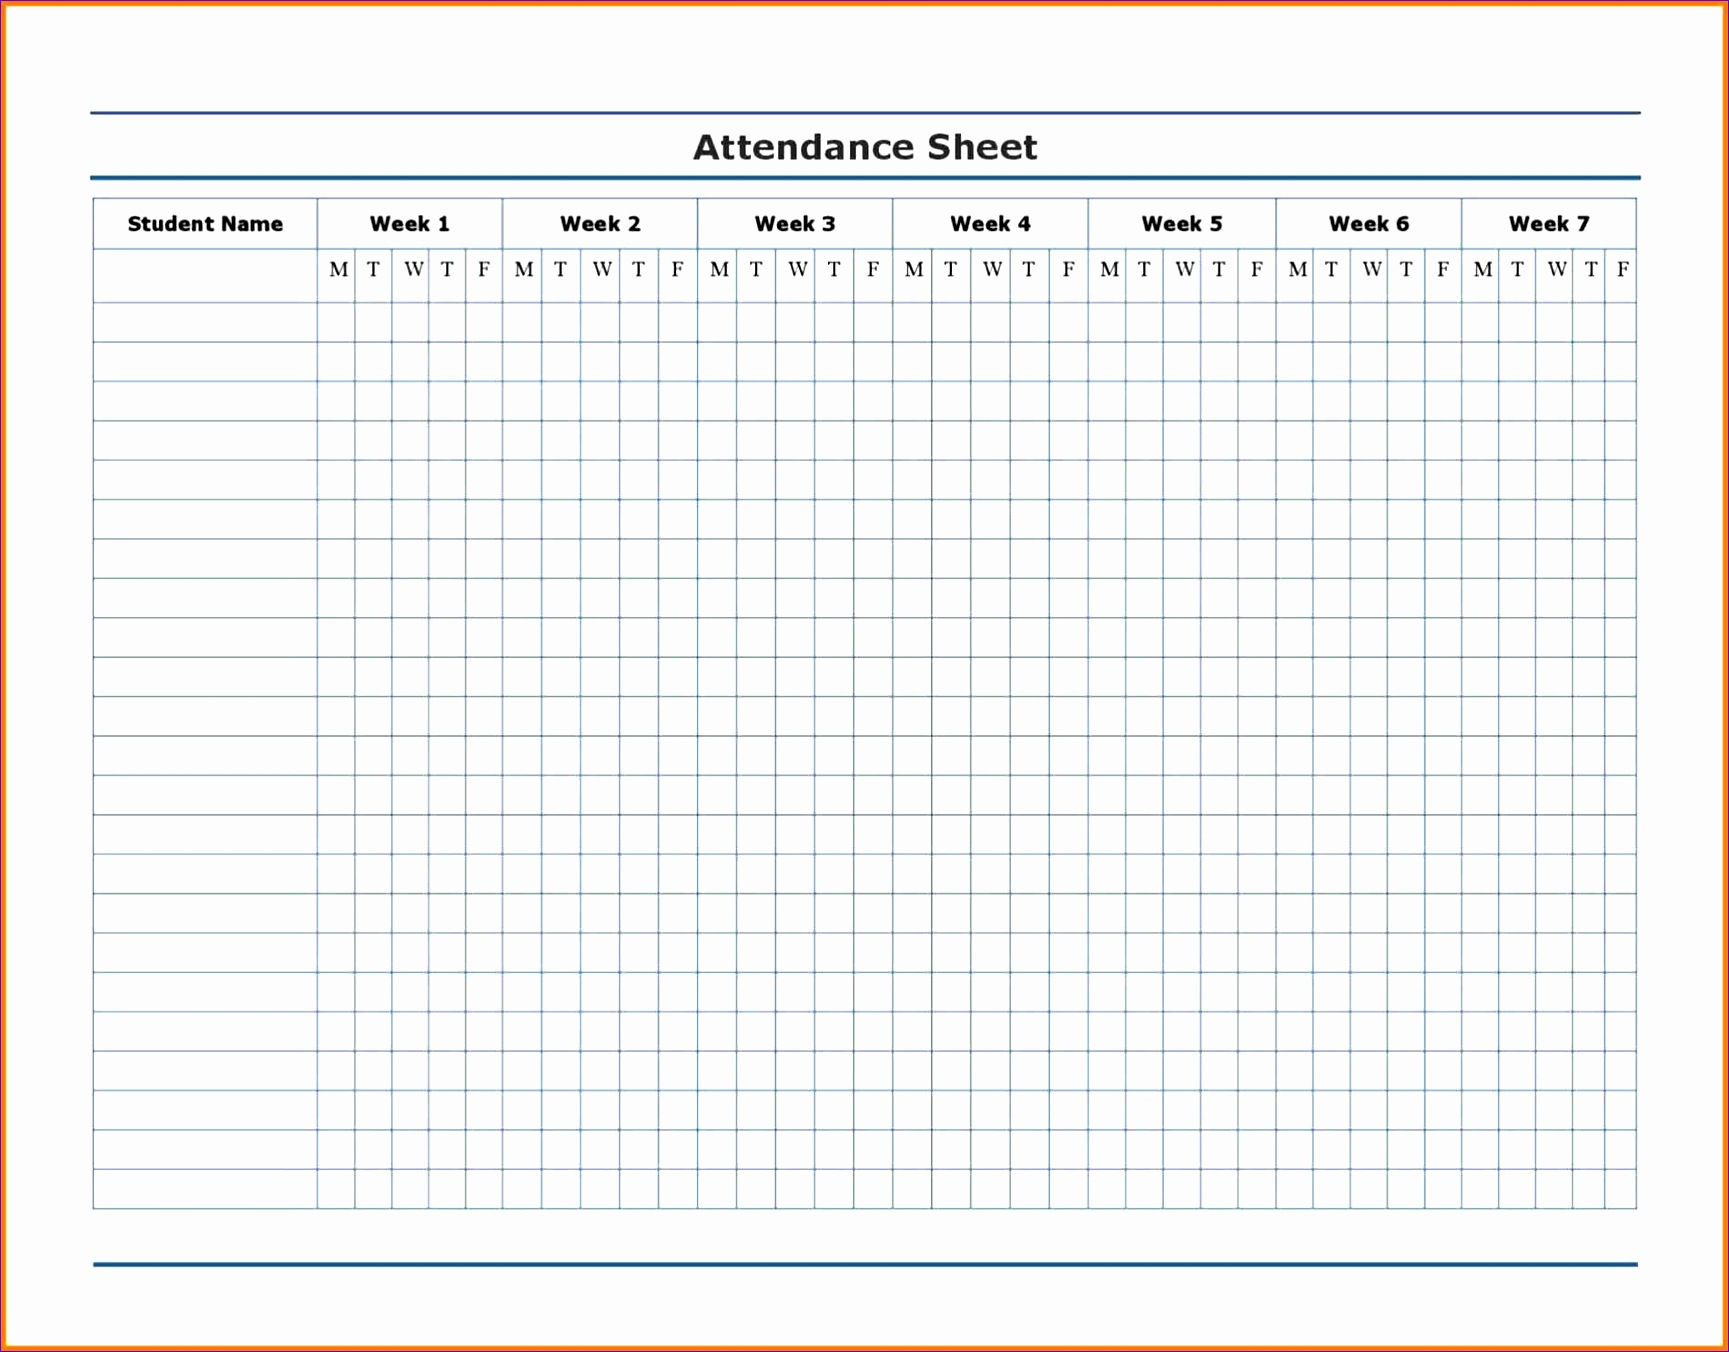 with employee Attendance Sheet Excel attendance sheet excel archives calendar printable with template for mailroom clerk attendance Attendance Sheet Excel sheet template